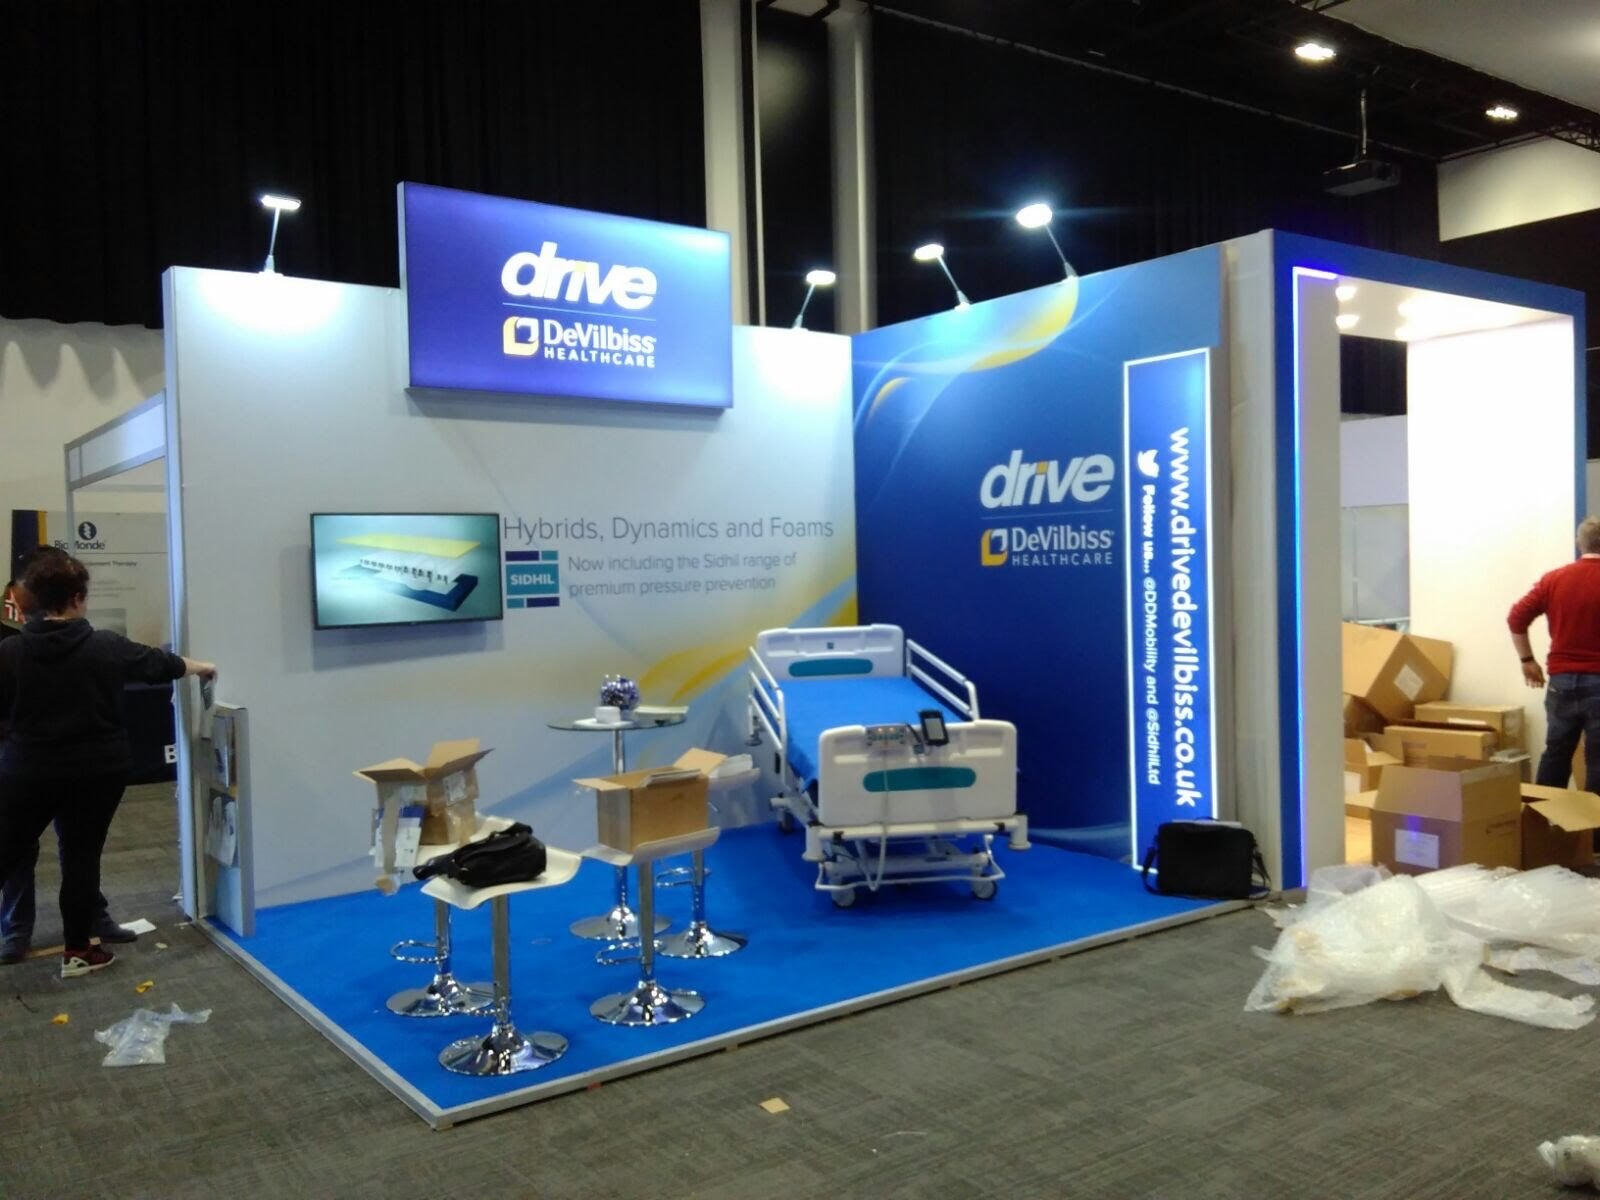 Drive Modular Exhibition Stand by Oaks Exhibitions